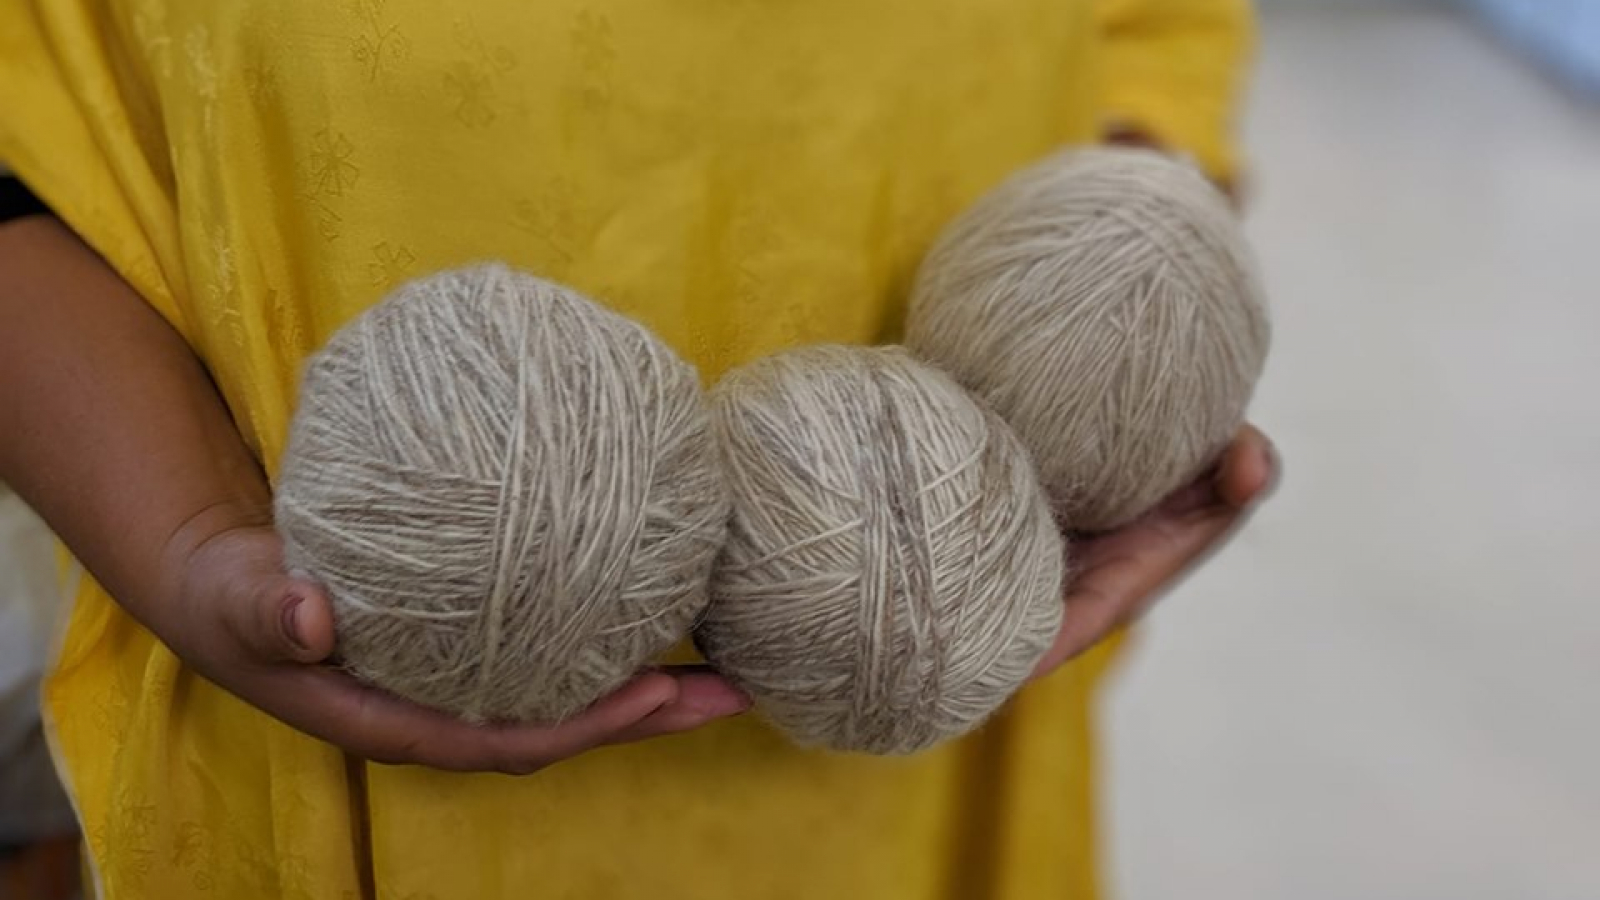 Wool is in high demand in the country and can help the locals to earn money